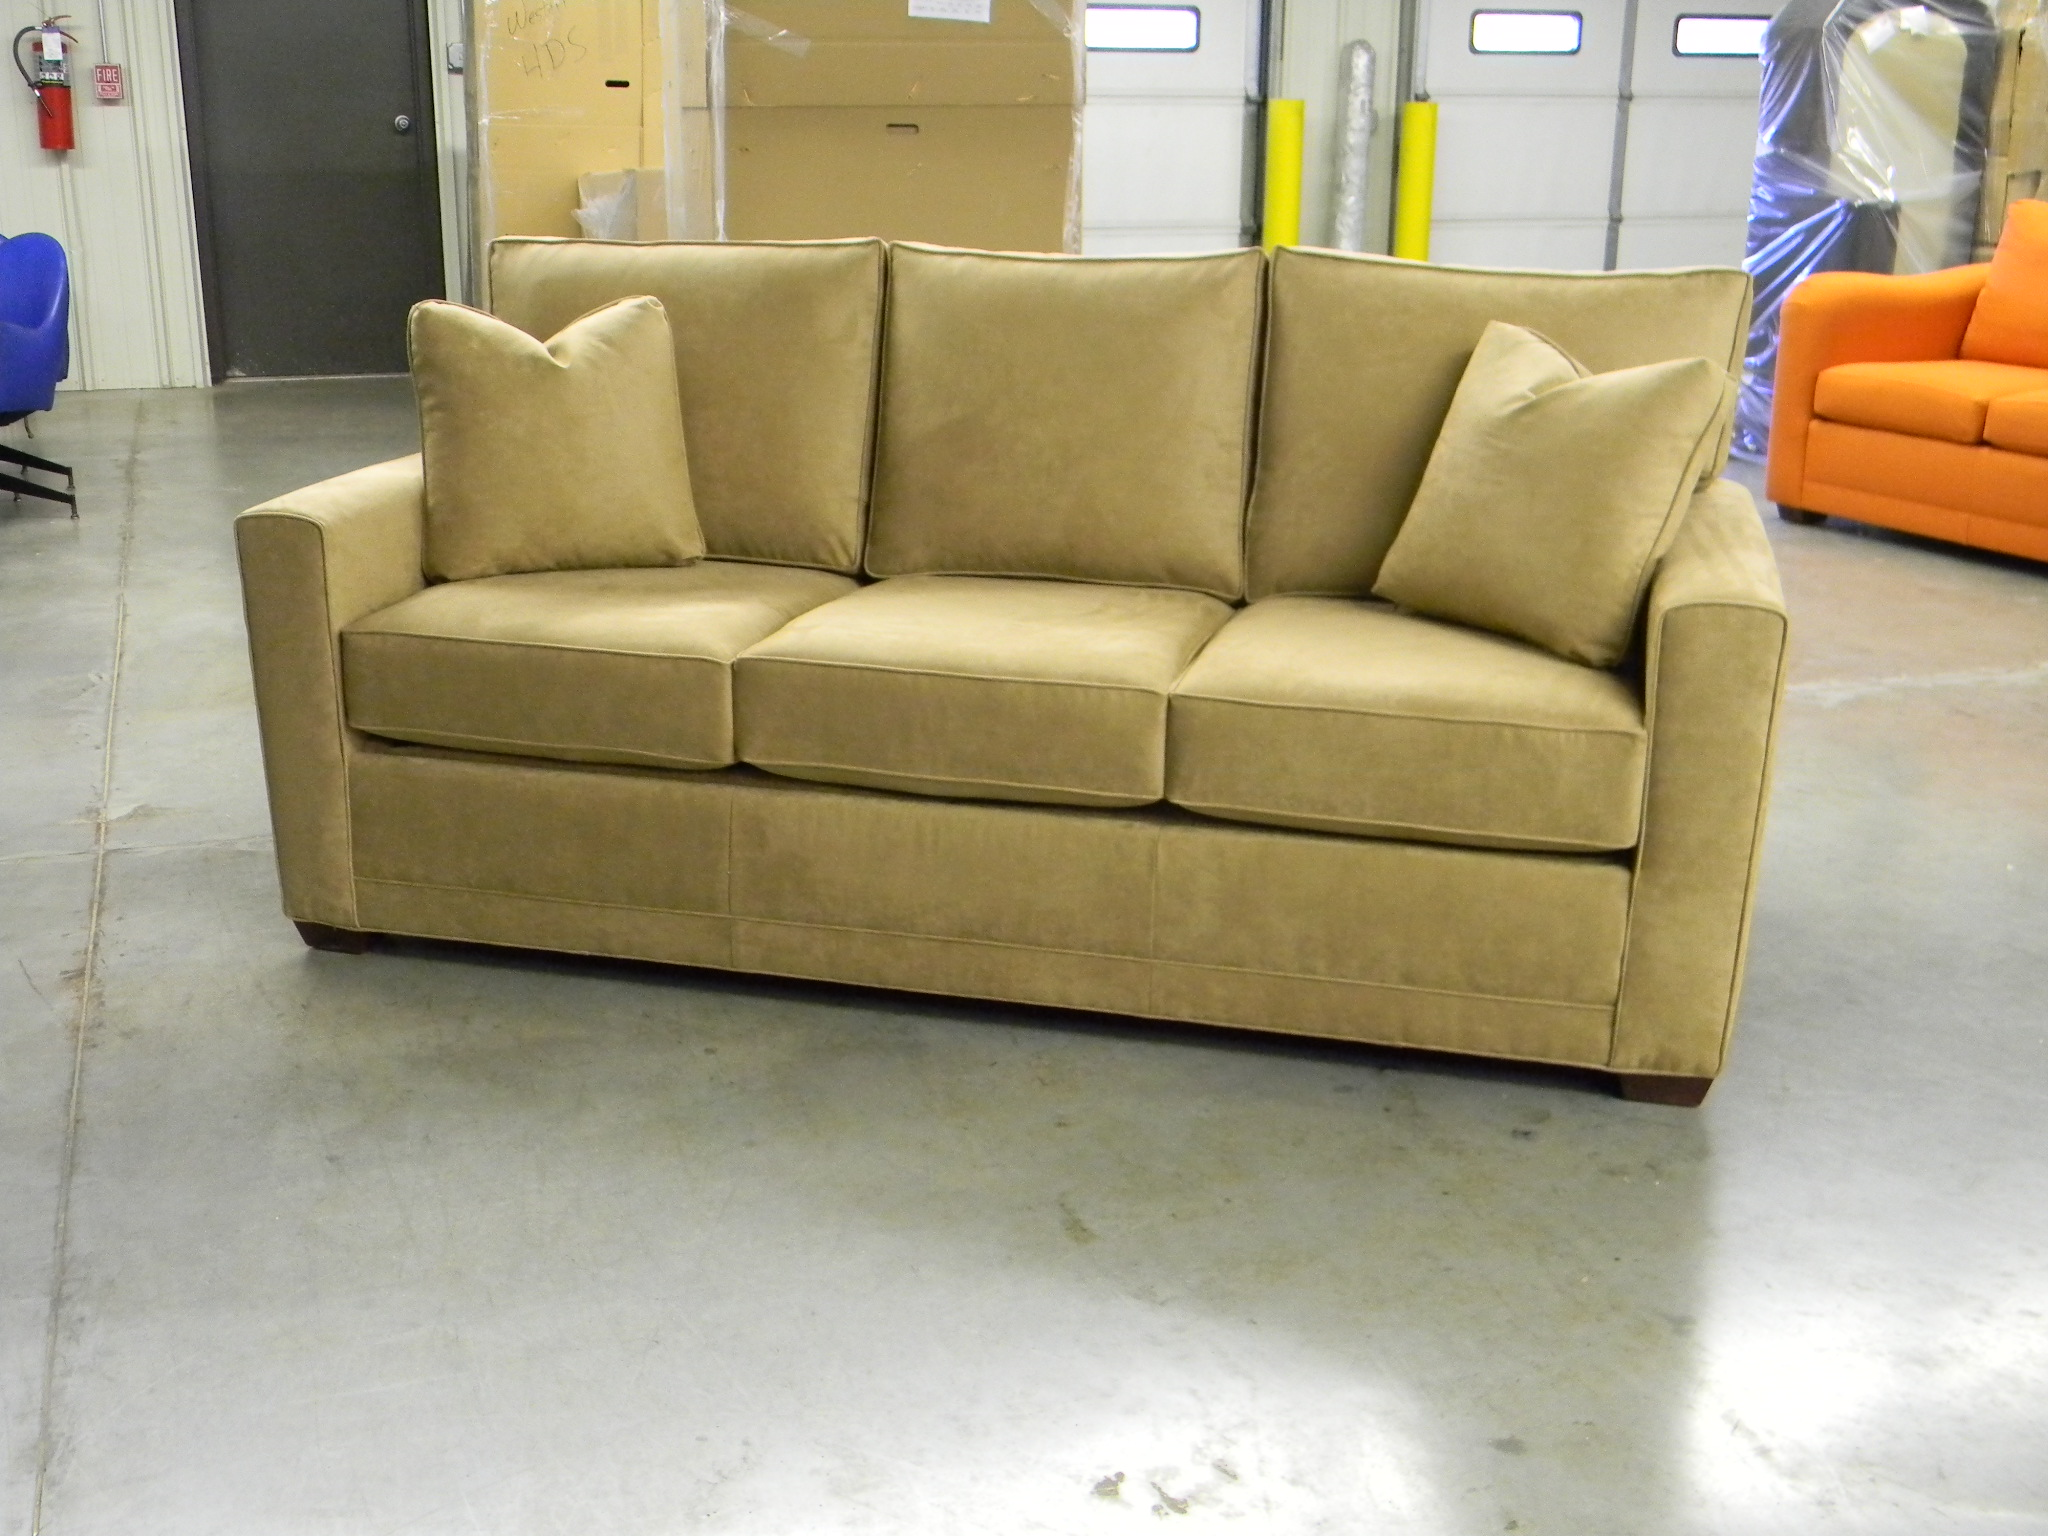 A lot of furniture: reviews of customers and employees about the store. Reviews of the sofa Amsterdam 92